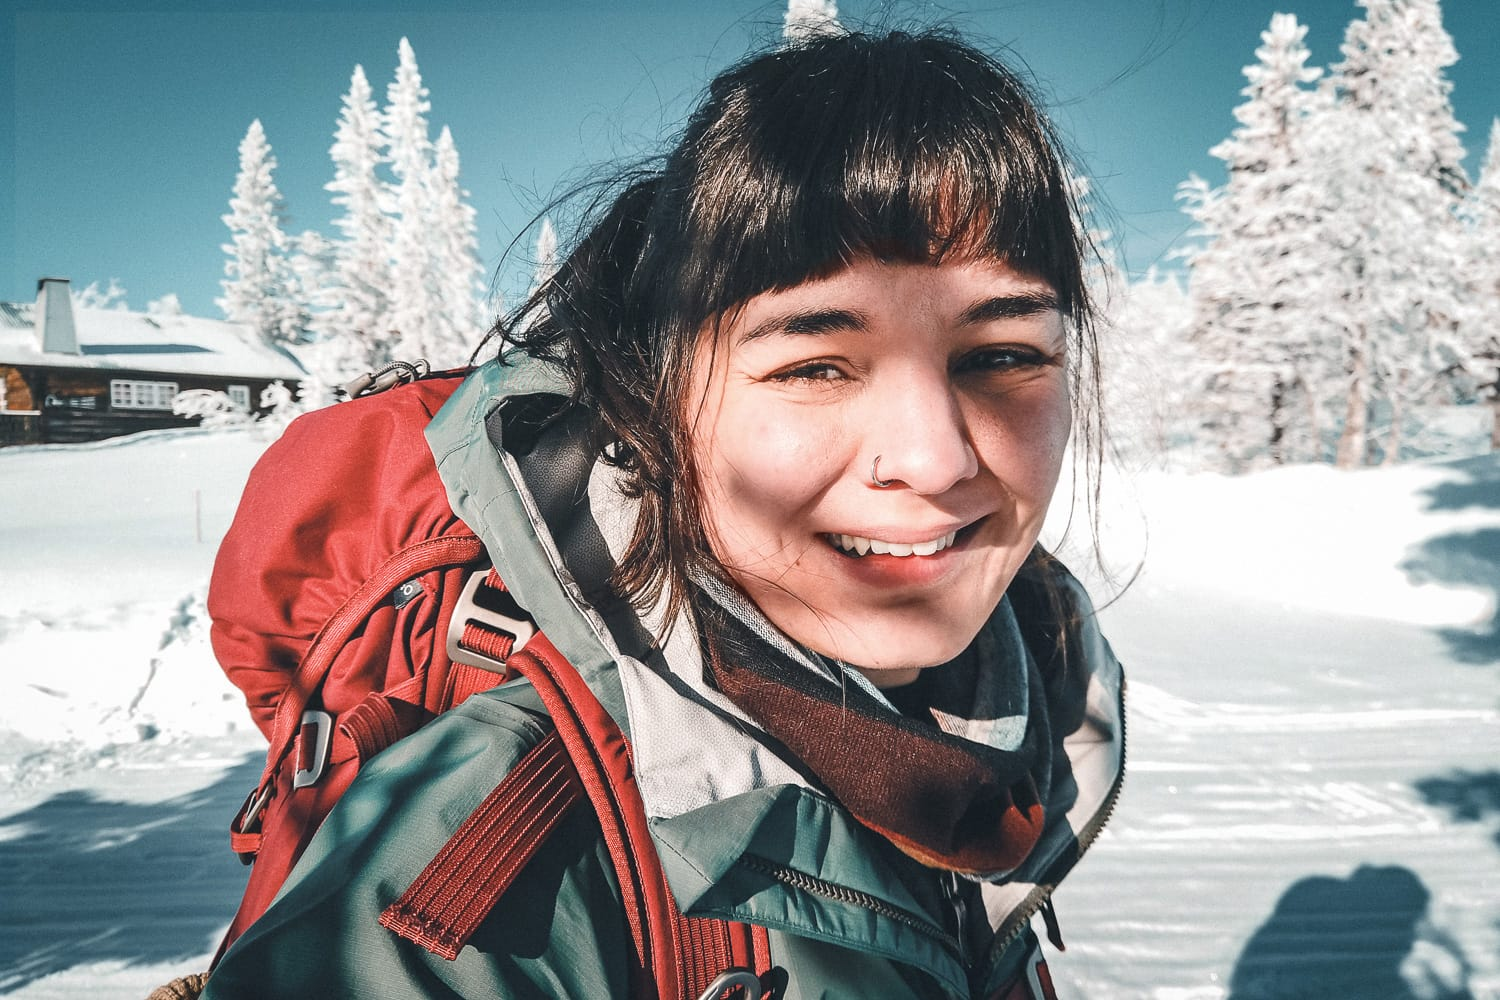 Woman with backpack smiling in the winter sun